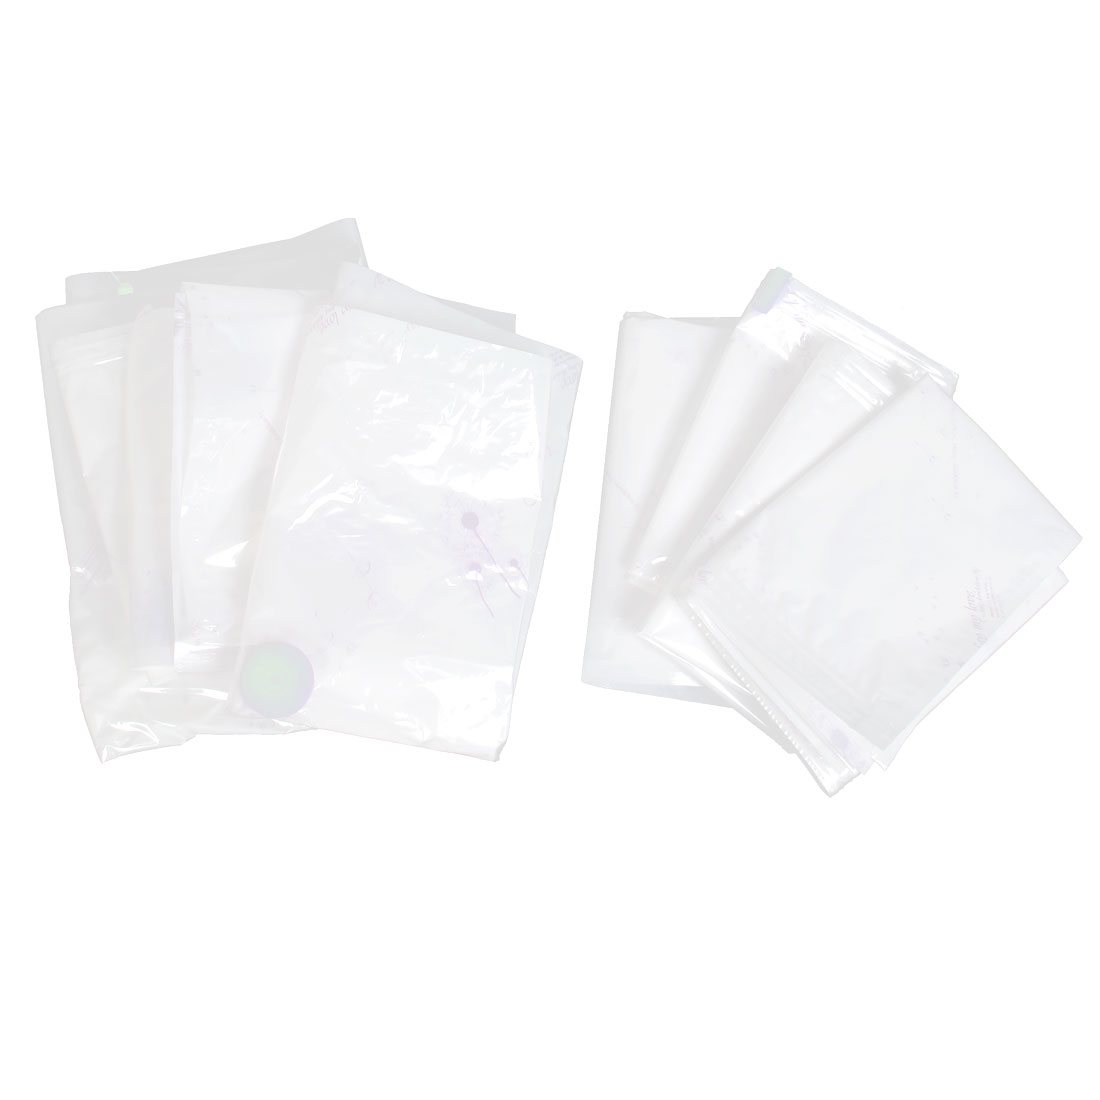 8PCS Travel Clothing Quilt Seal Vacuum Compressed Storage Bags w Hand Pump